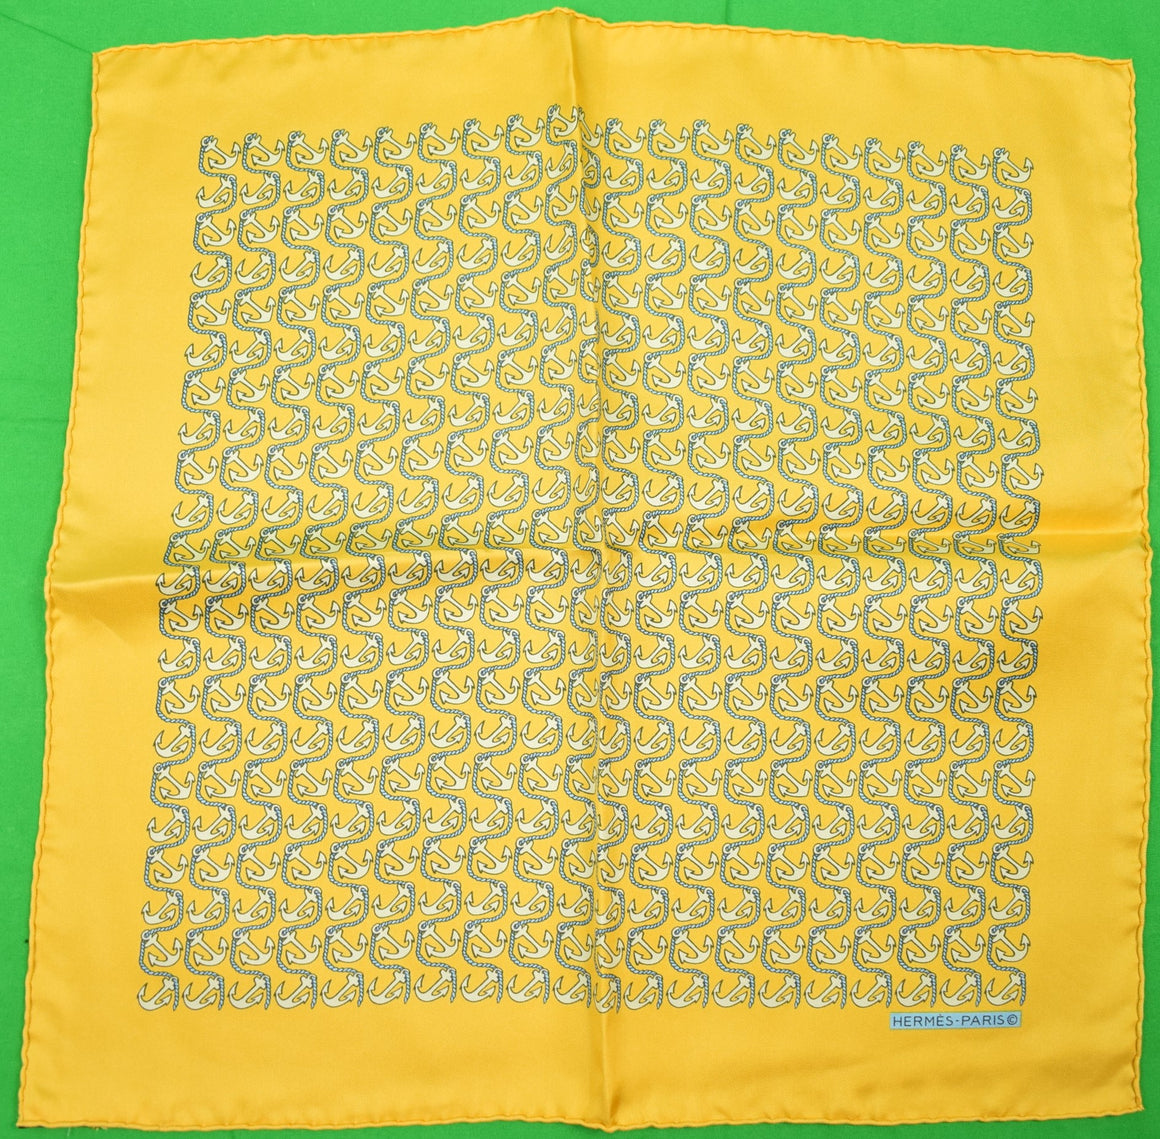 Hermes 'Anchor Waves' Yellow Silk Pocket Square